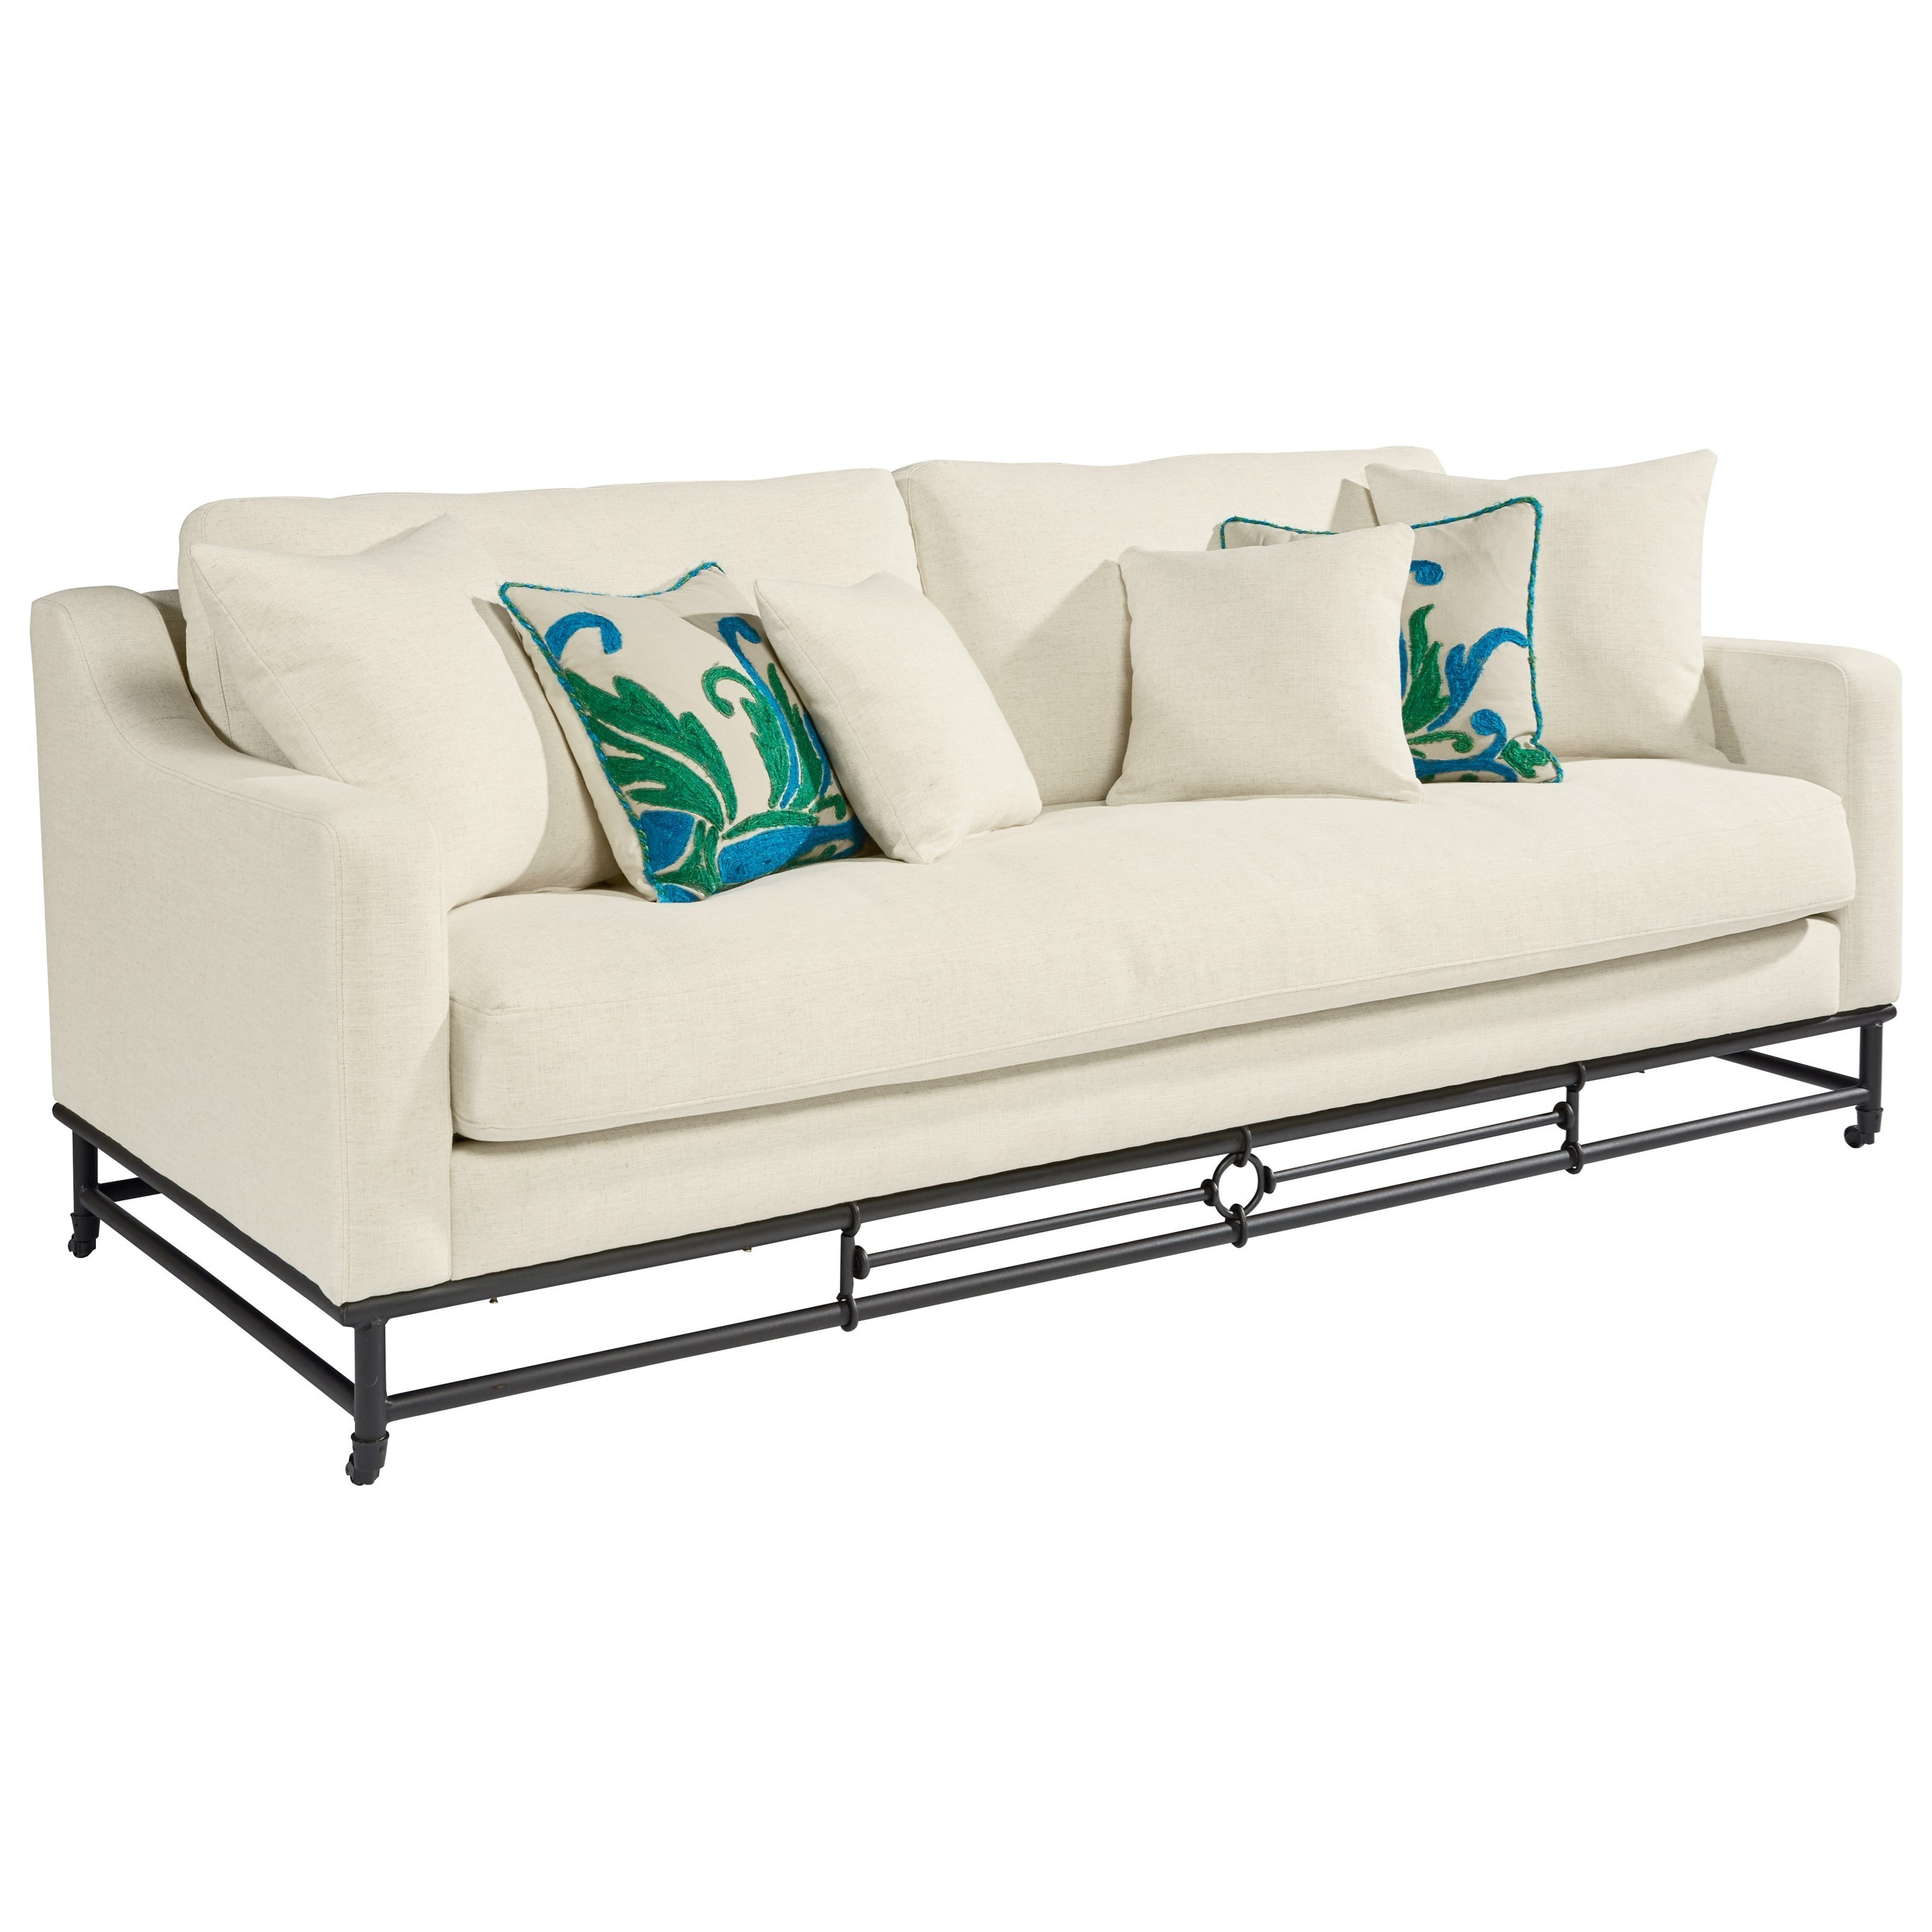 Magnolia Home By Joanna Gaines Ironworks Sofa   Hudsonu0027s Furniture   Sofas